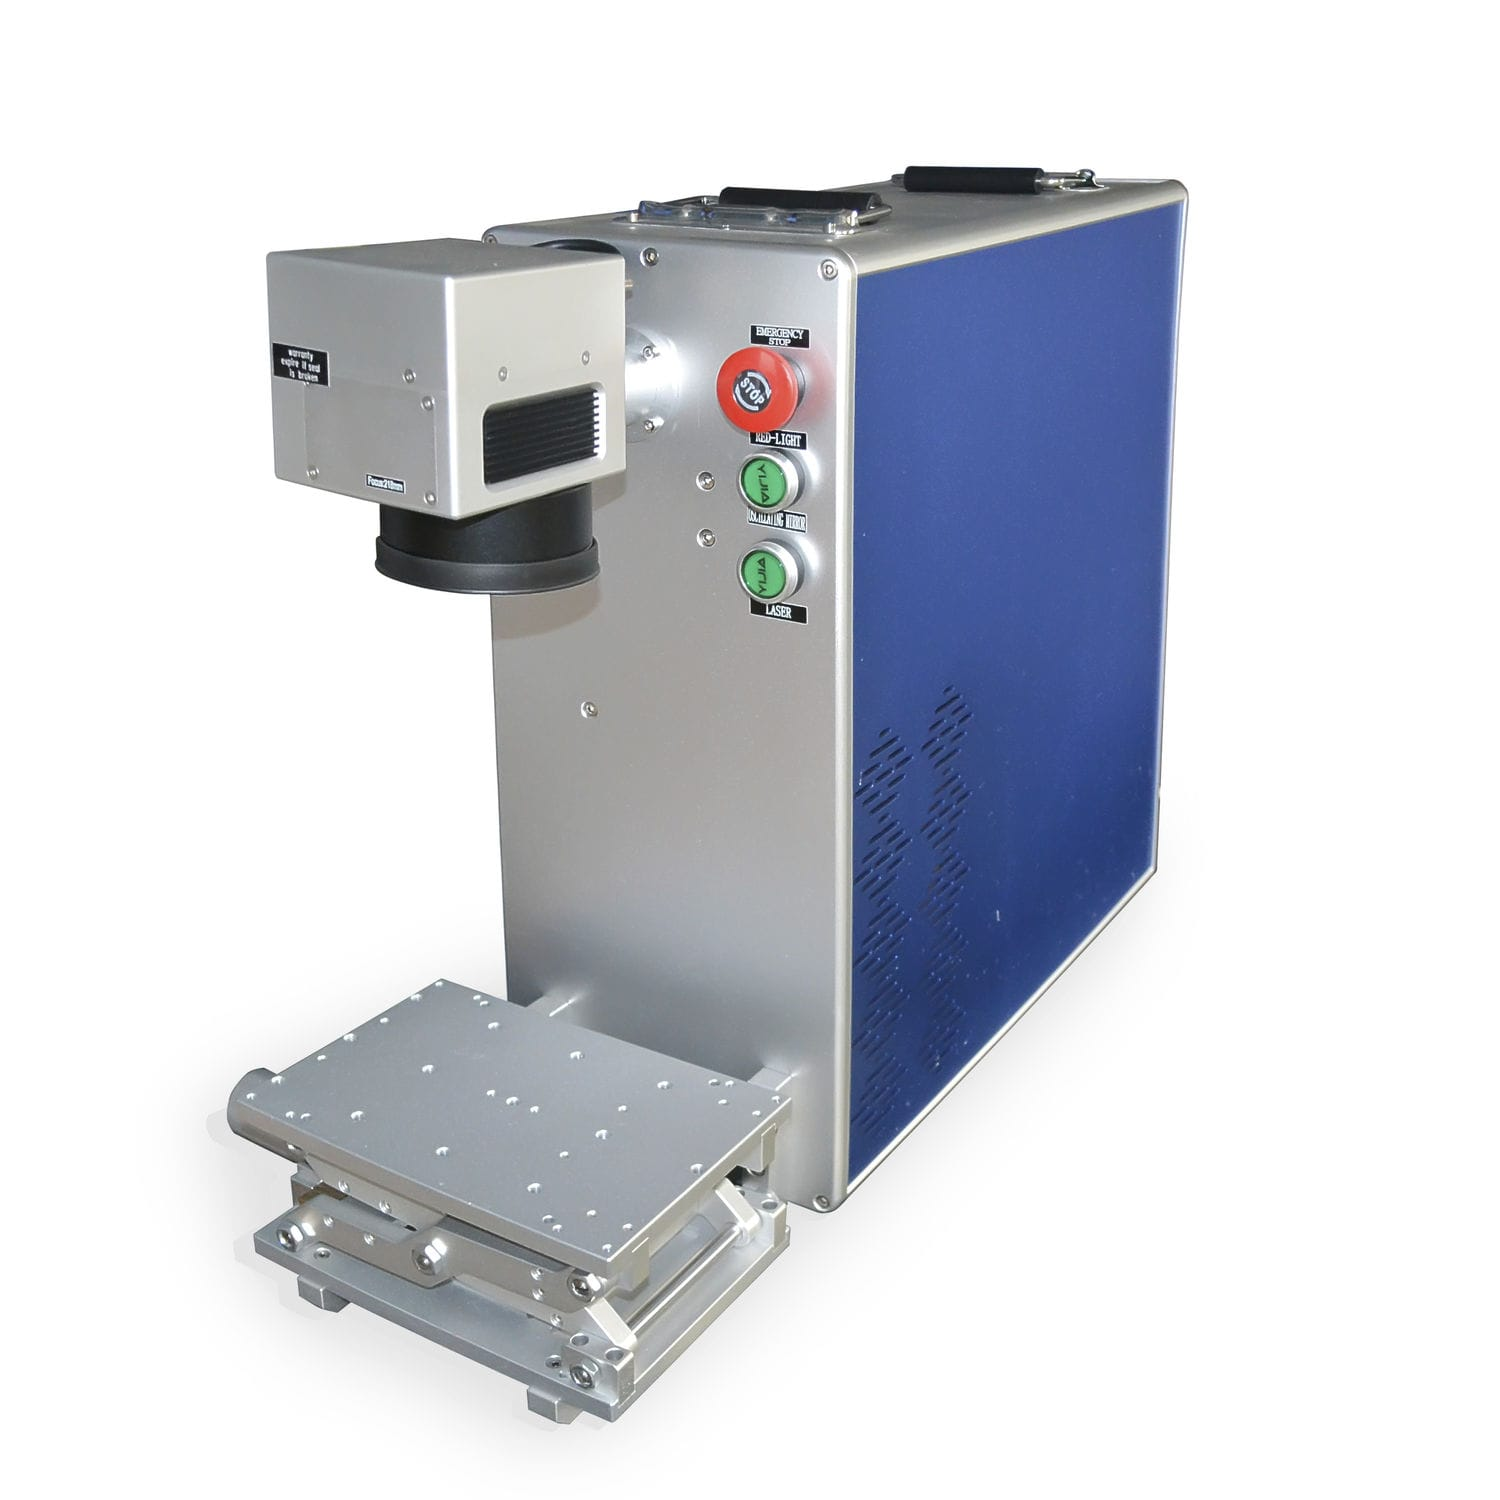 3 Axis Portable Fiber Laser Marker with Low Cost